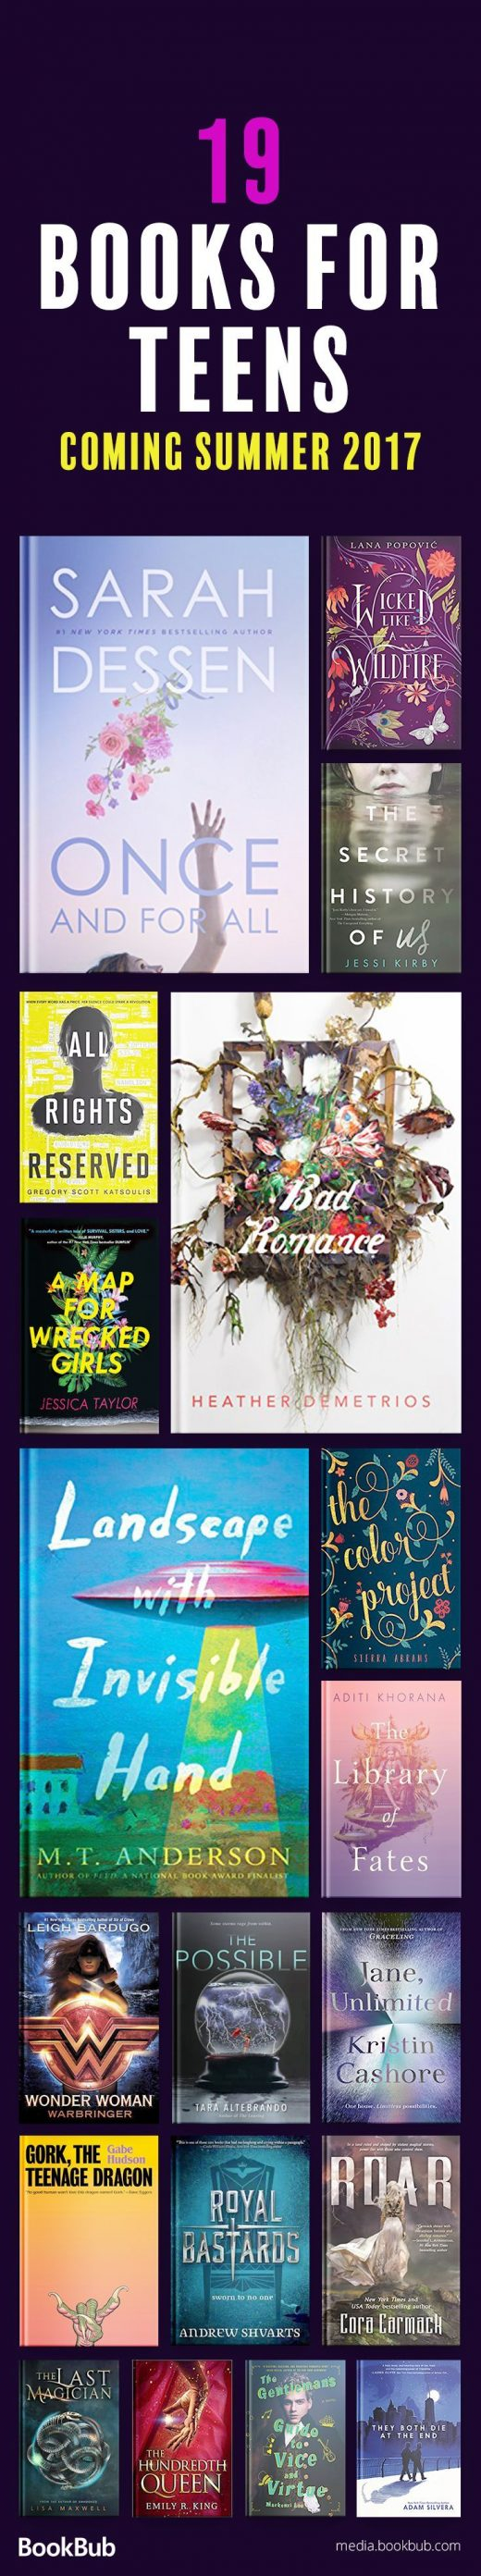 19 Teen Books for Adults You Might've Missed This Summer